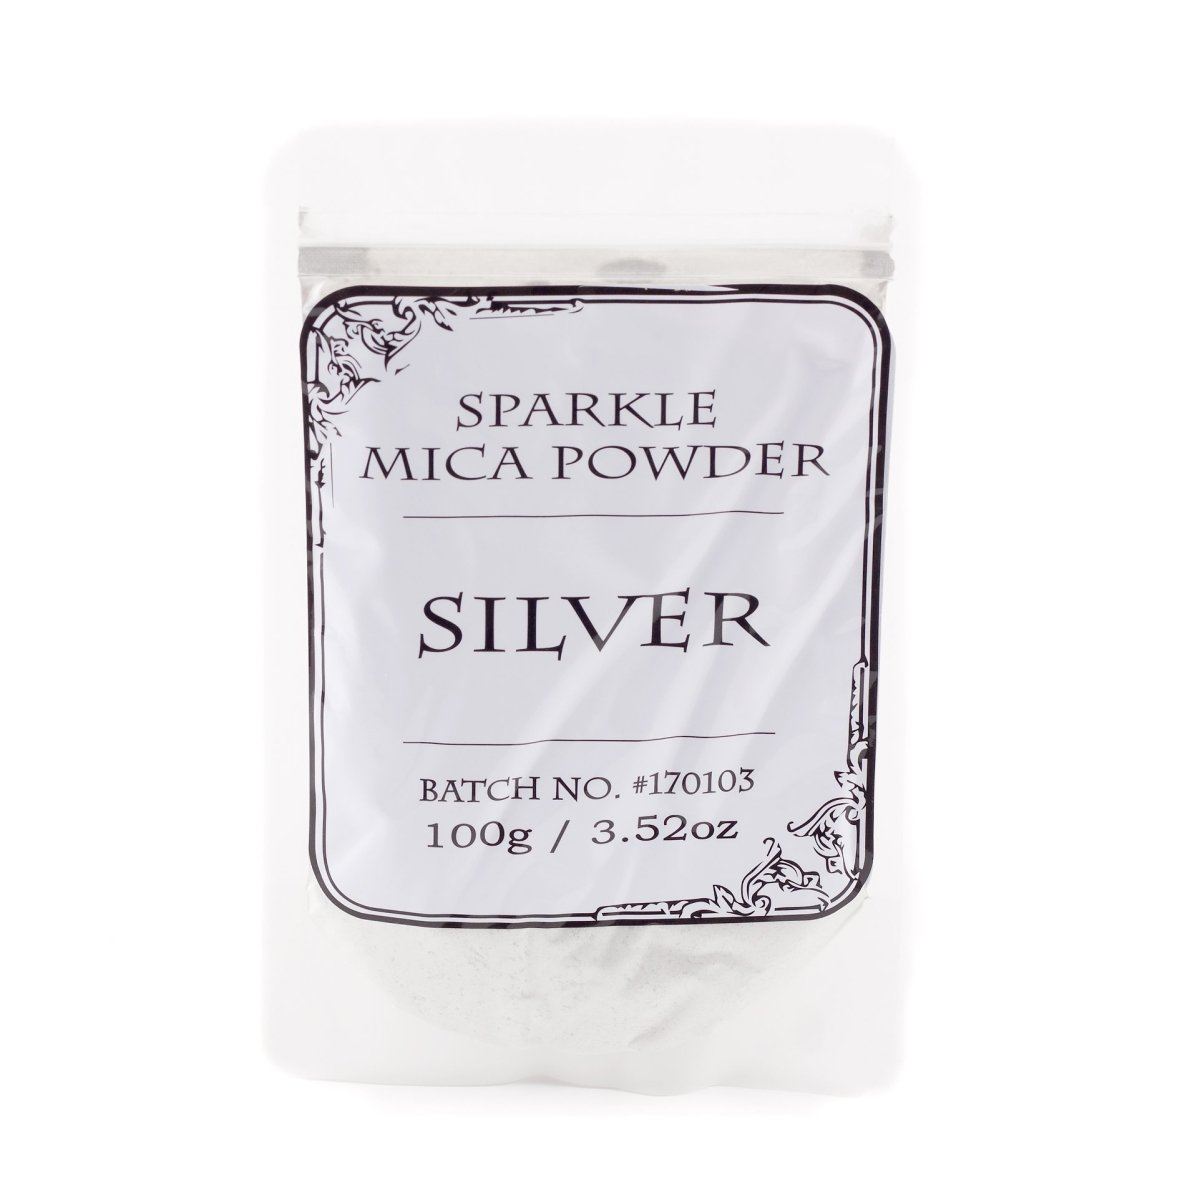 Silver Sparkle Mica - Mystic Moments UK